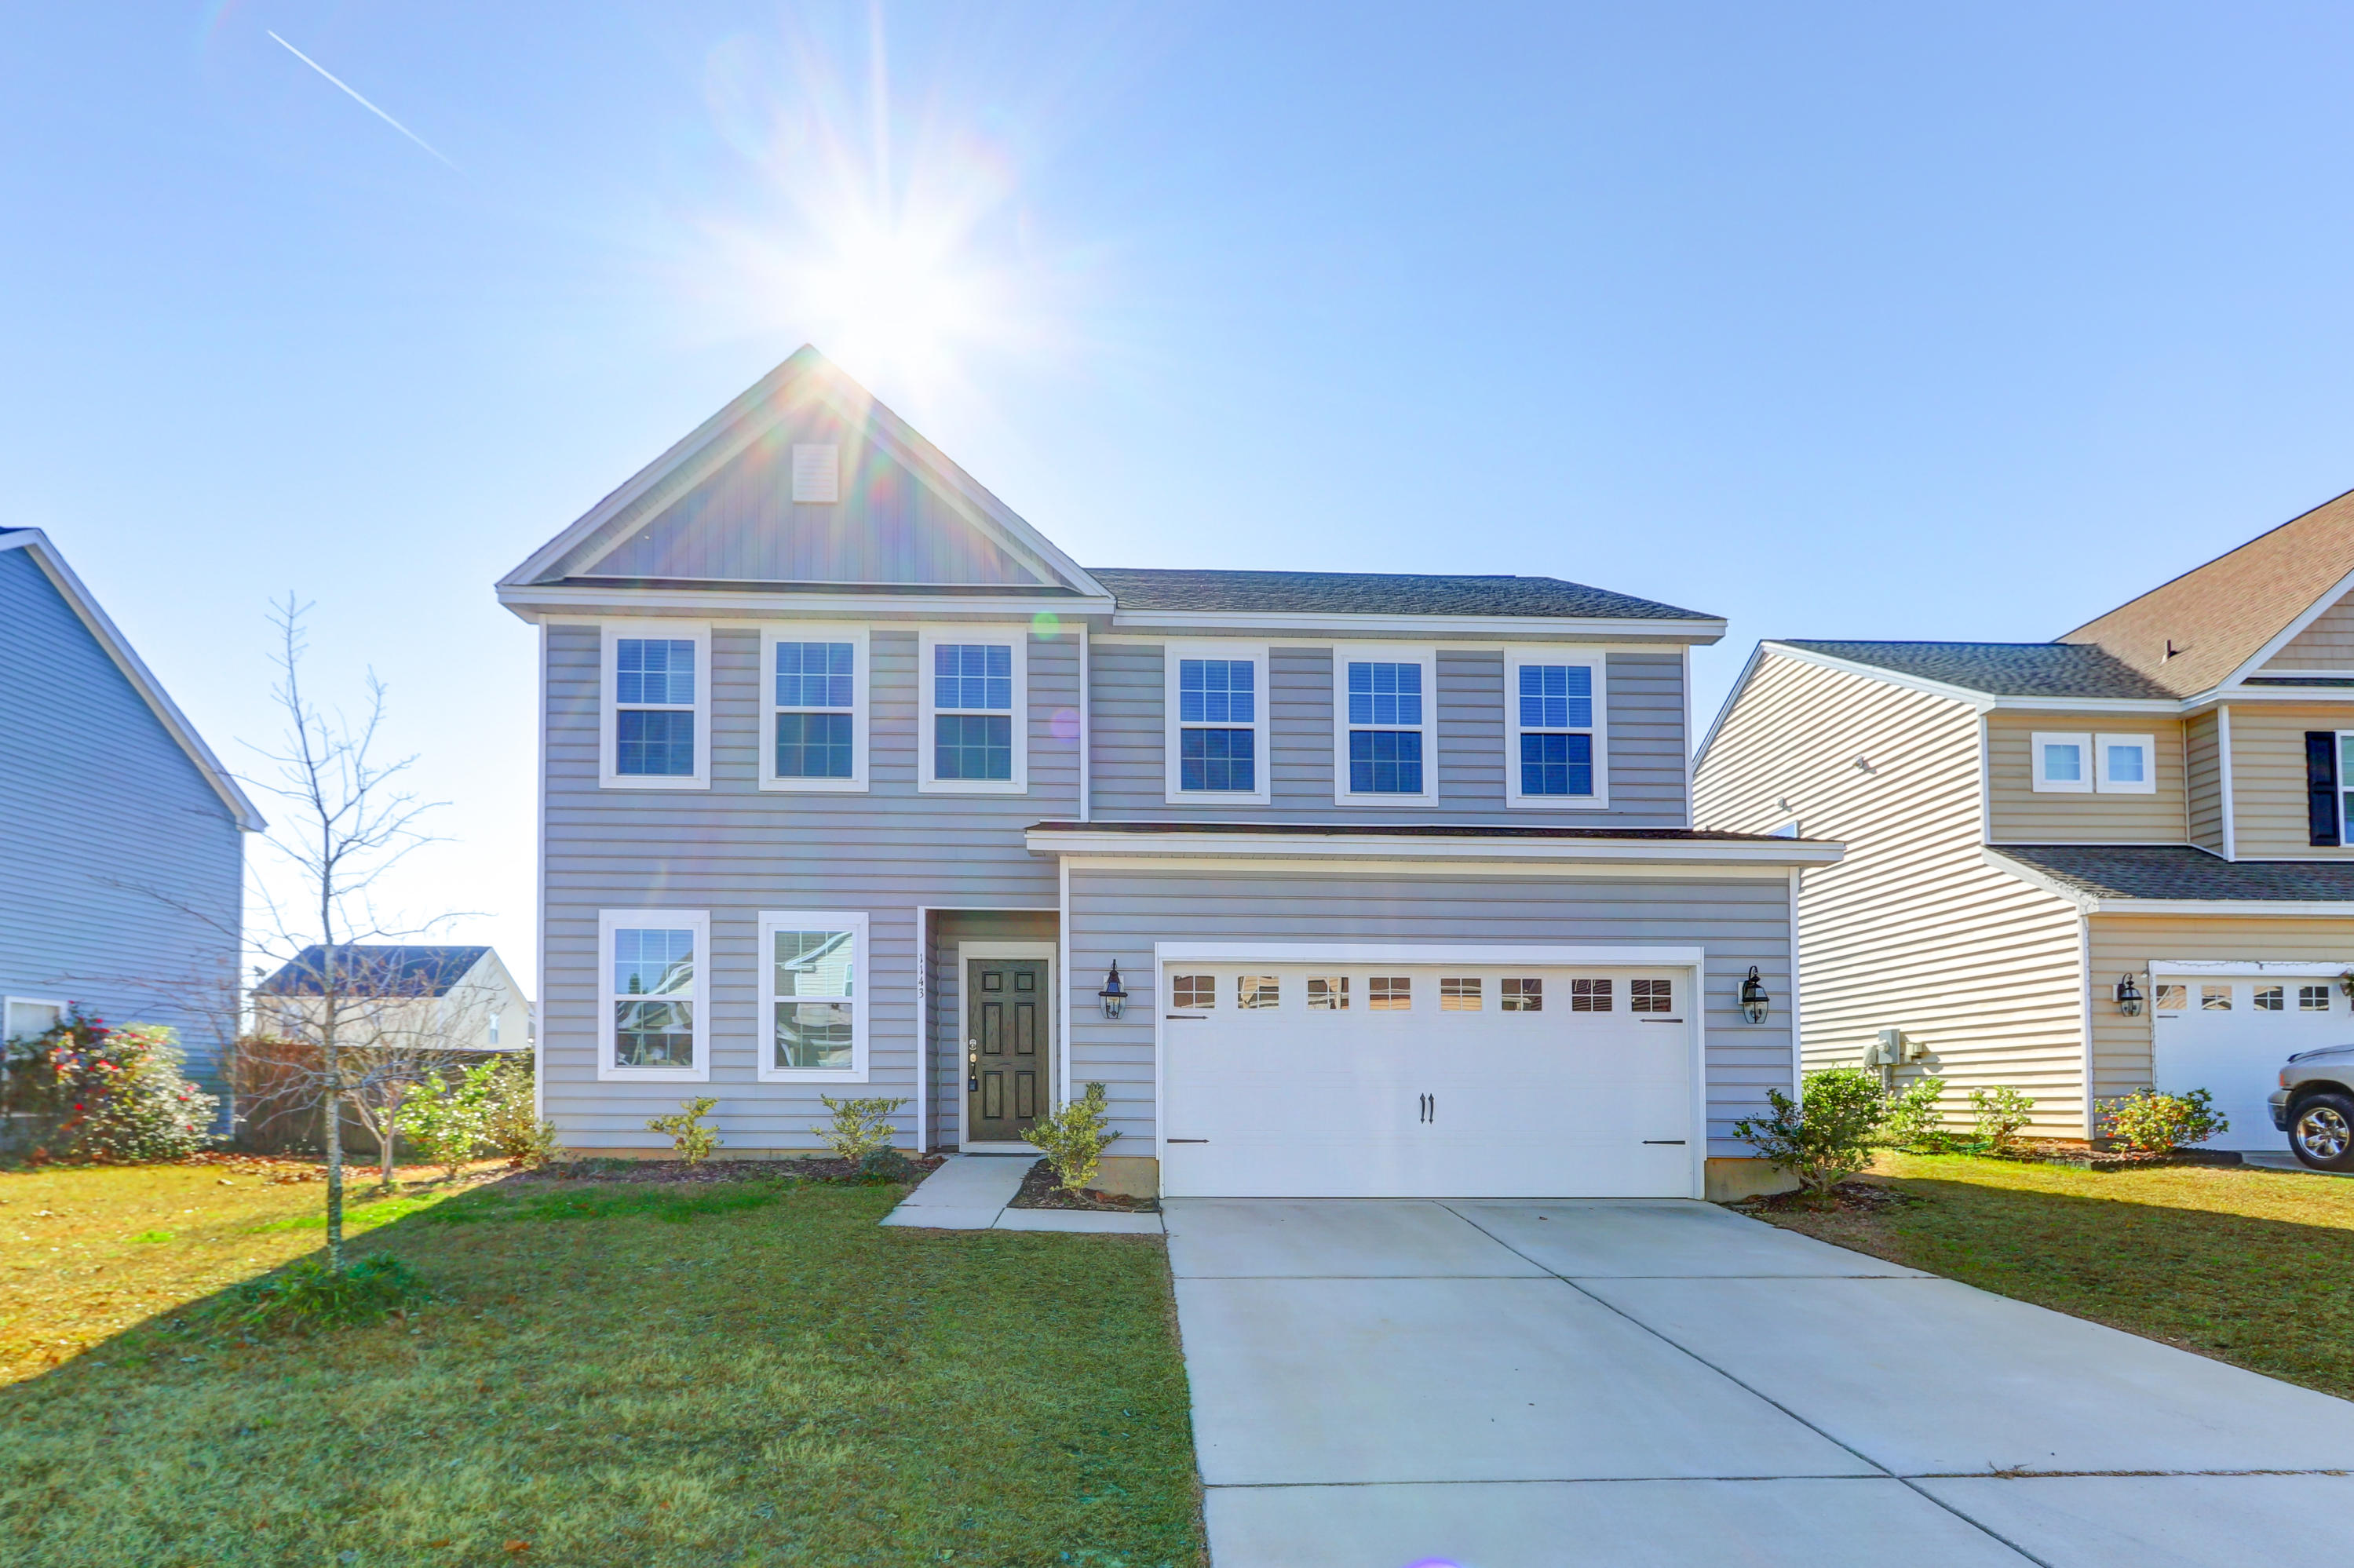 Photo of 1143 Moss Grove Dr, Moncks Corner, SC 29461